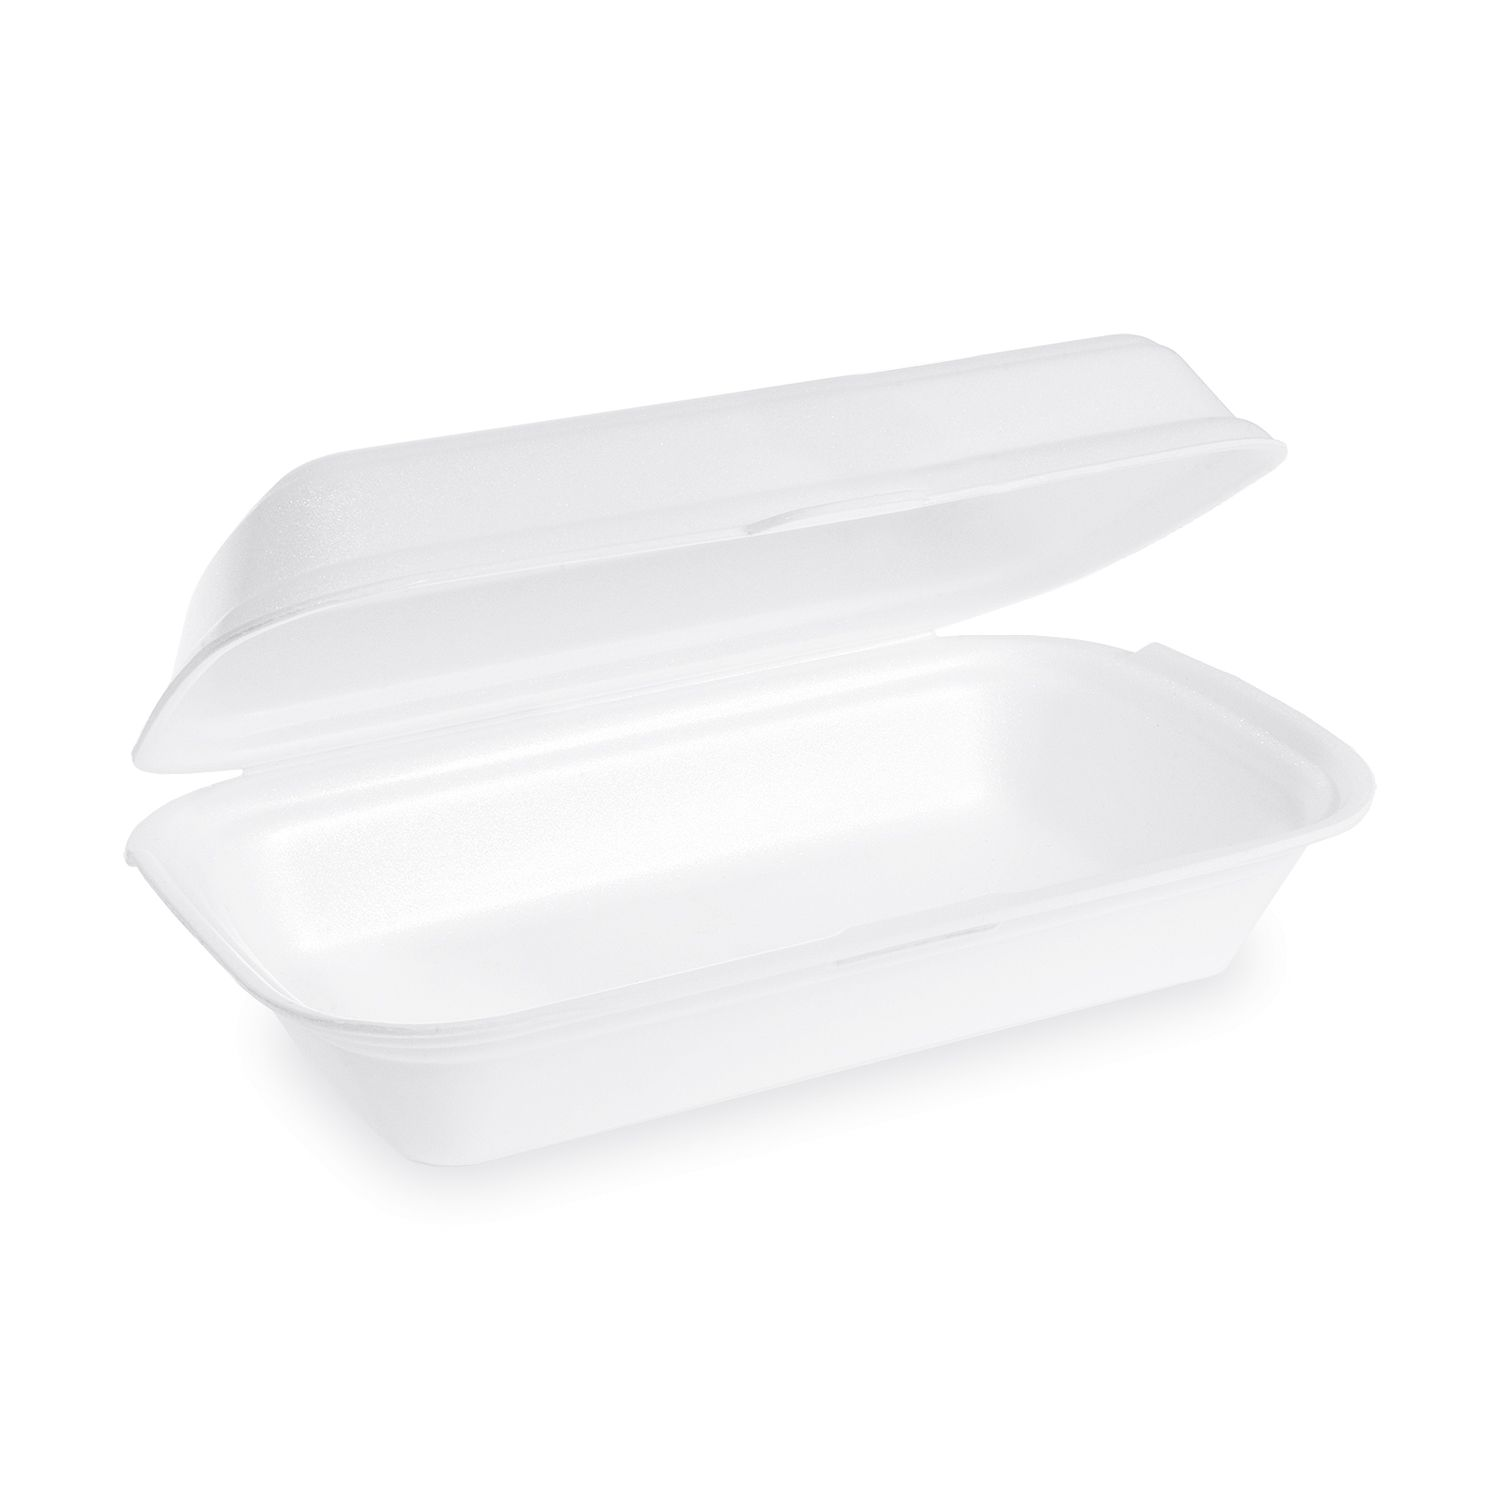 Menu box biely 240 x 133 x 75 mm [125 ks]